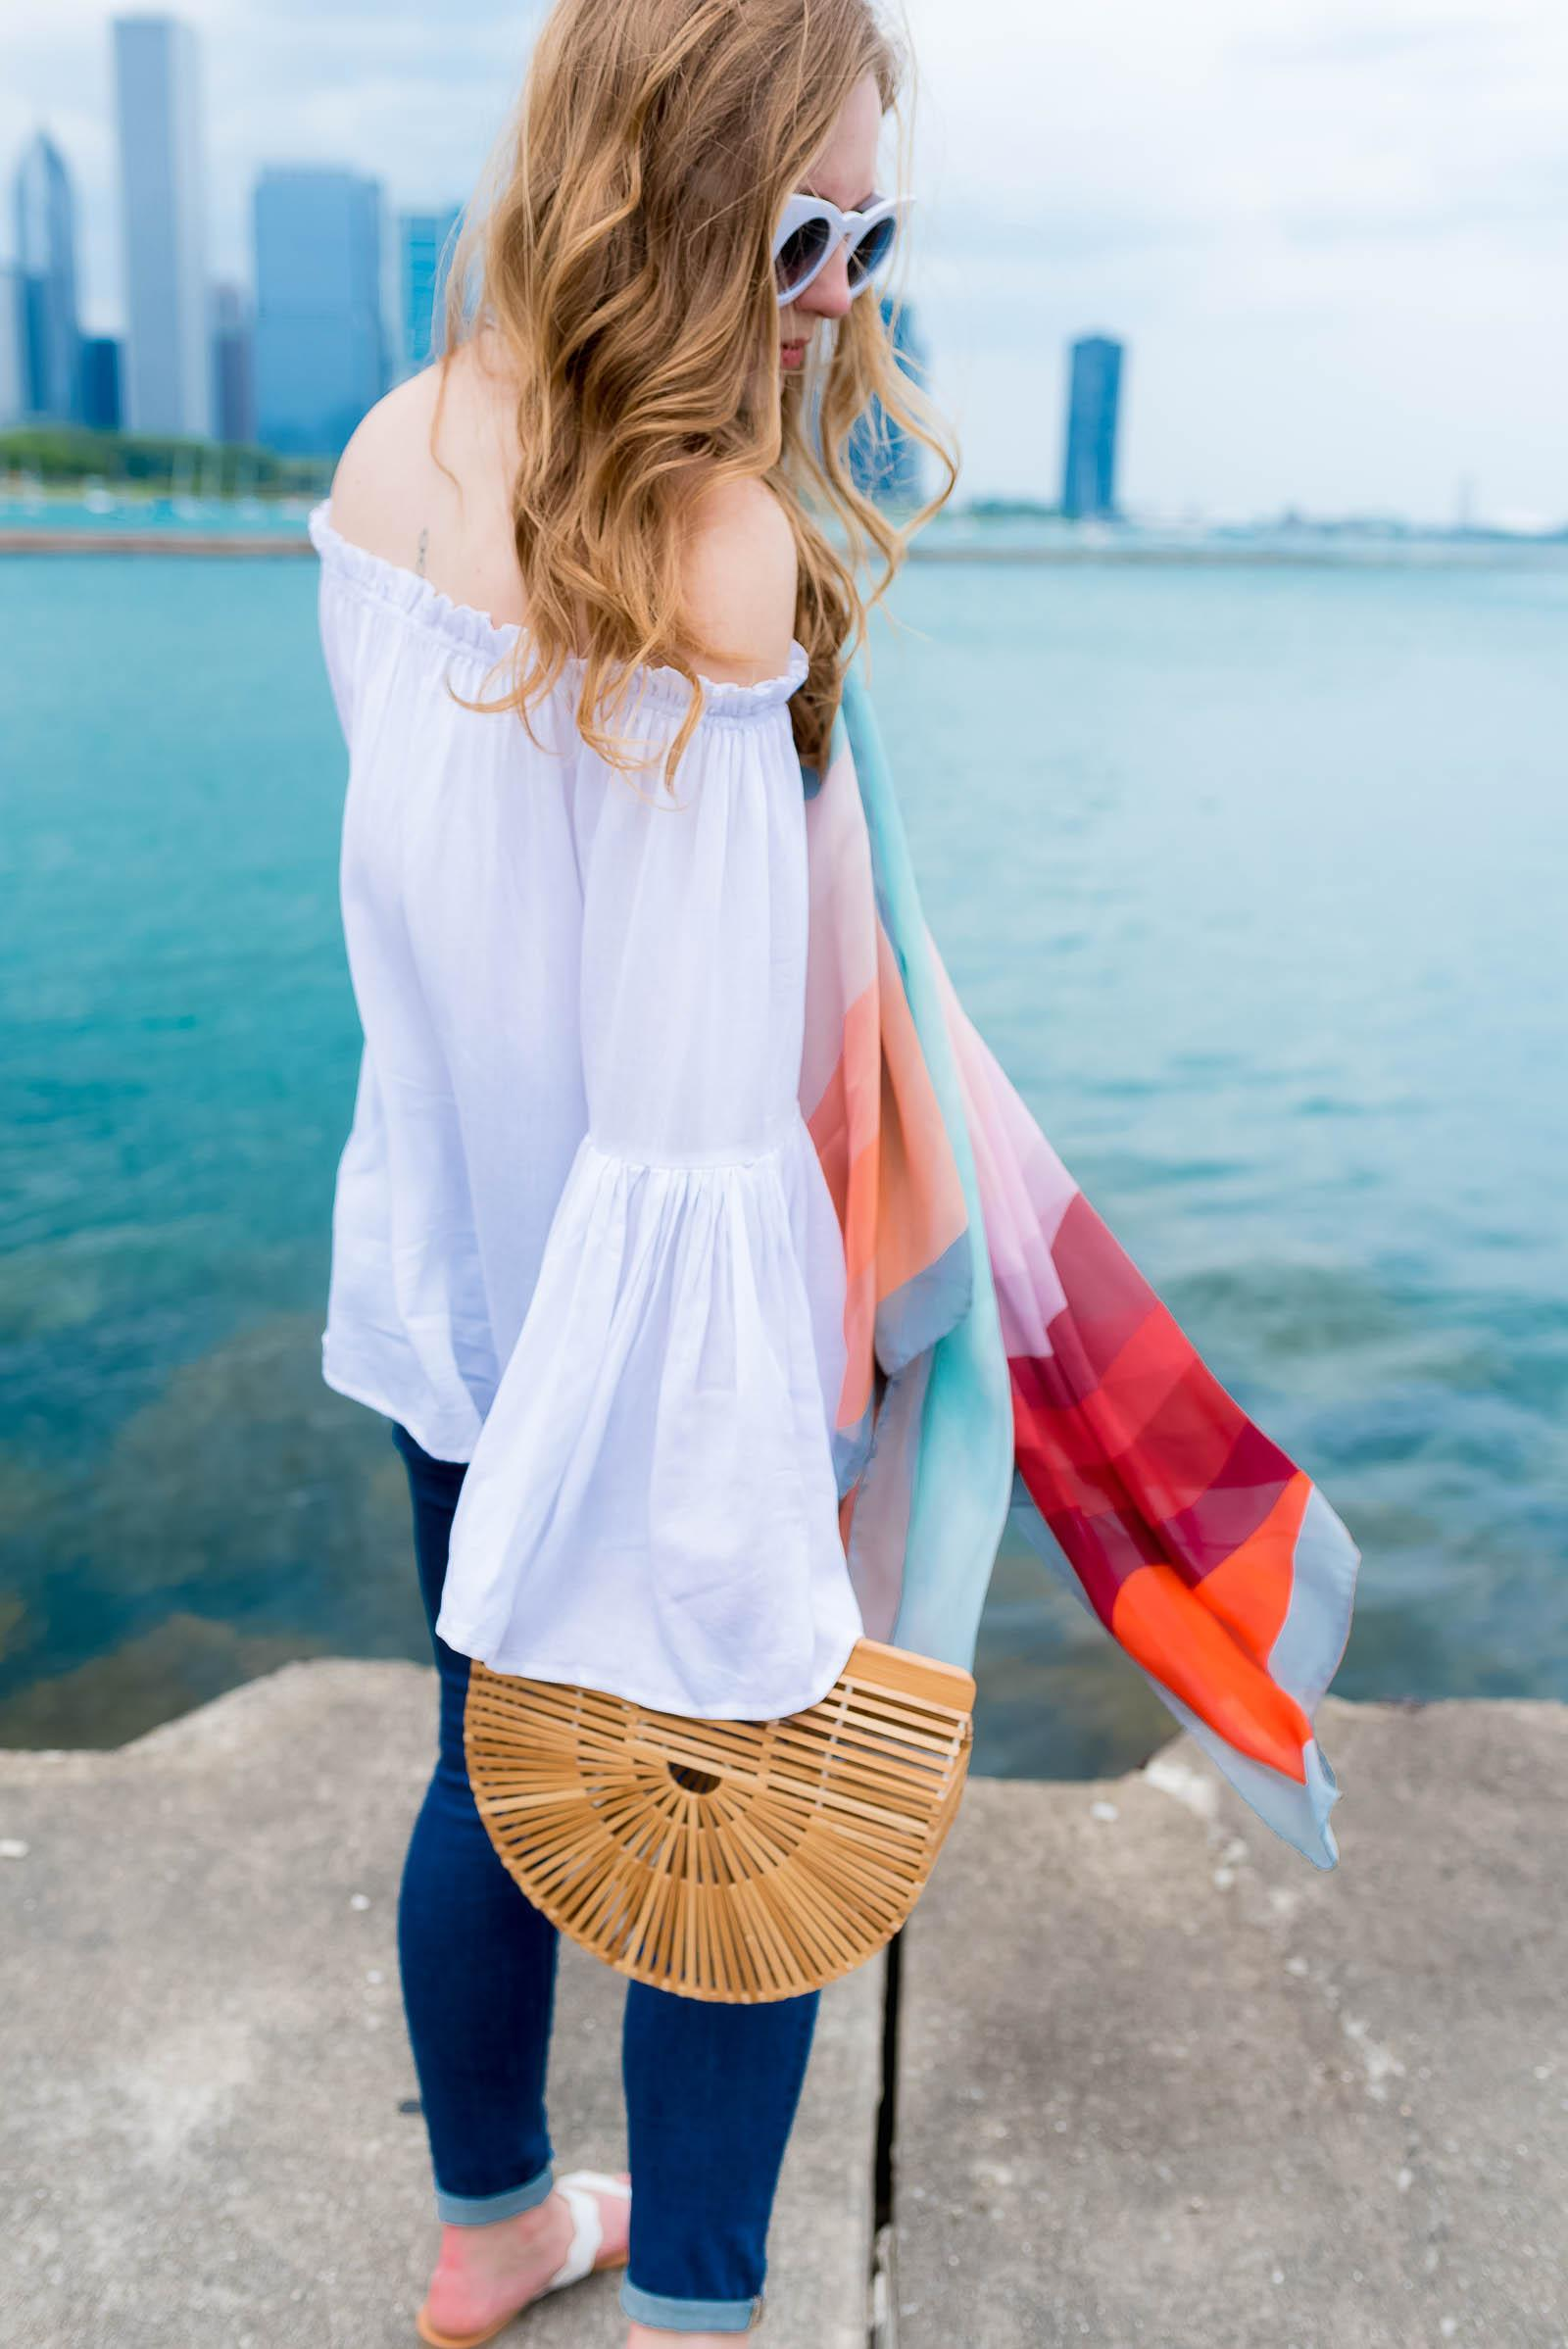 Cult Gaia Ark Bag Chic Summer Outfit